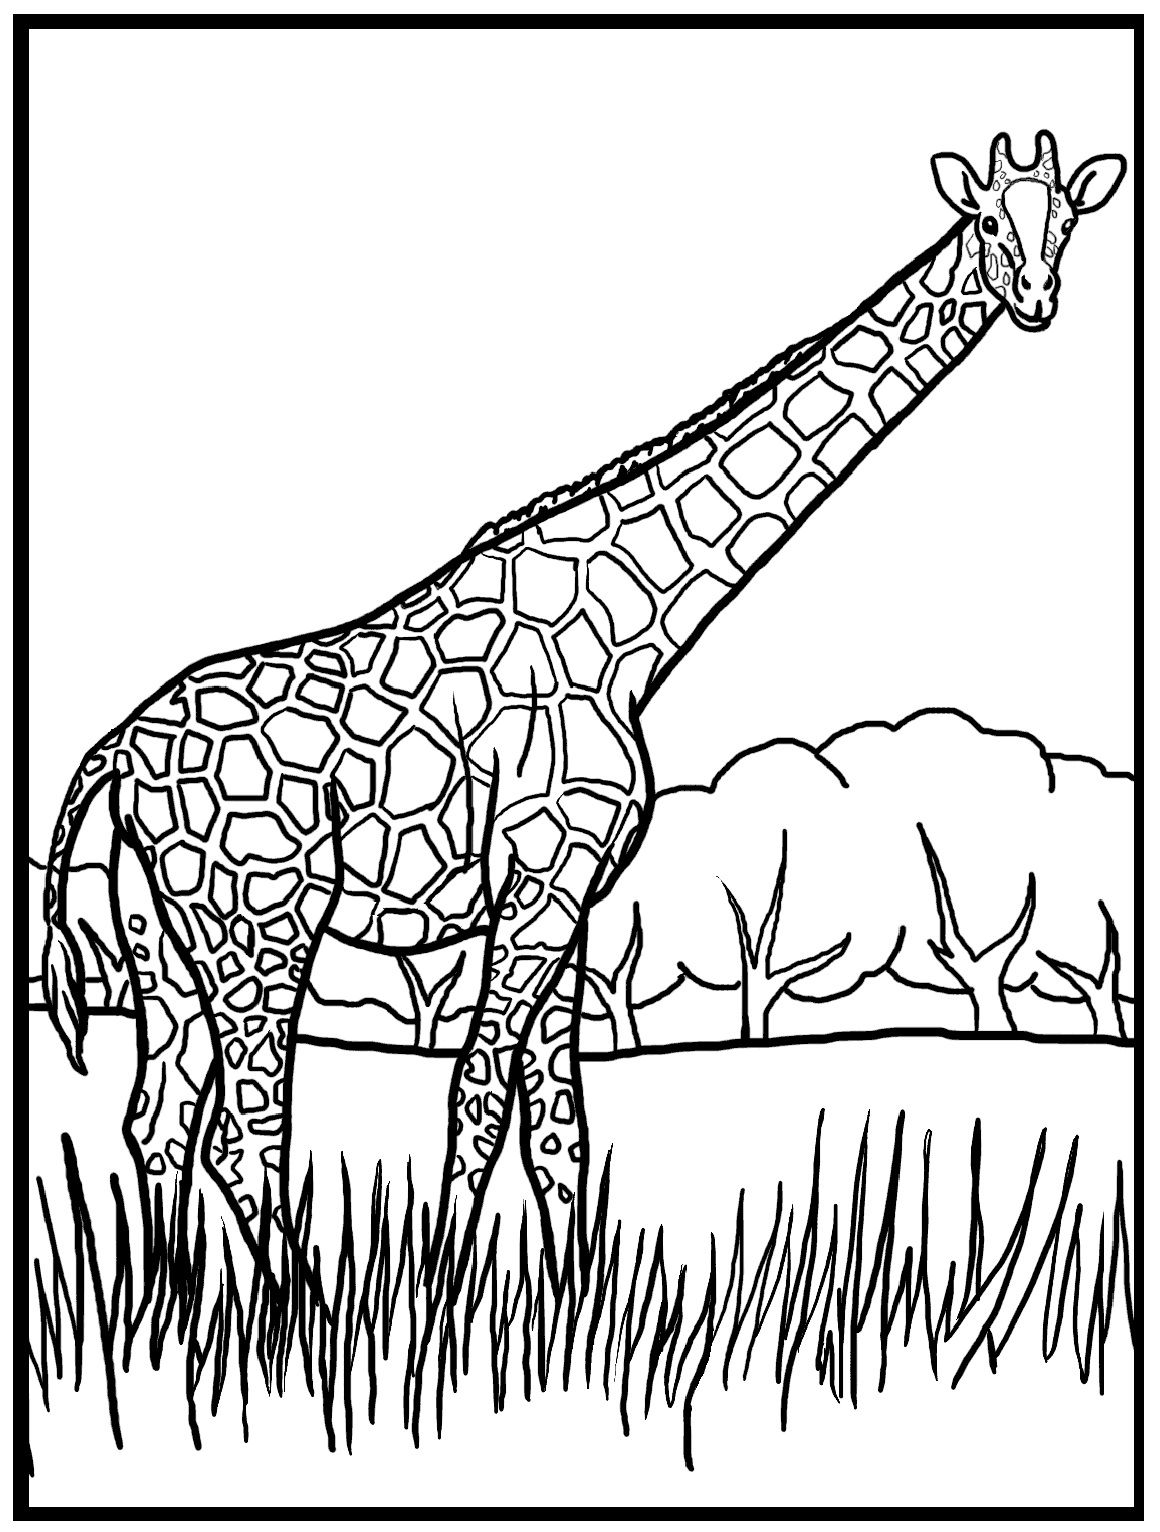 1160x1532 Free Printable Giraffe Coloring Pages For Kids